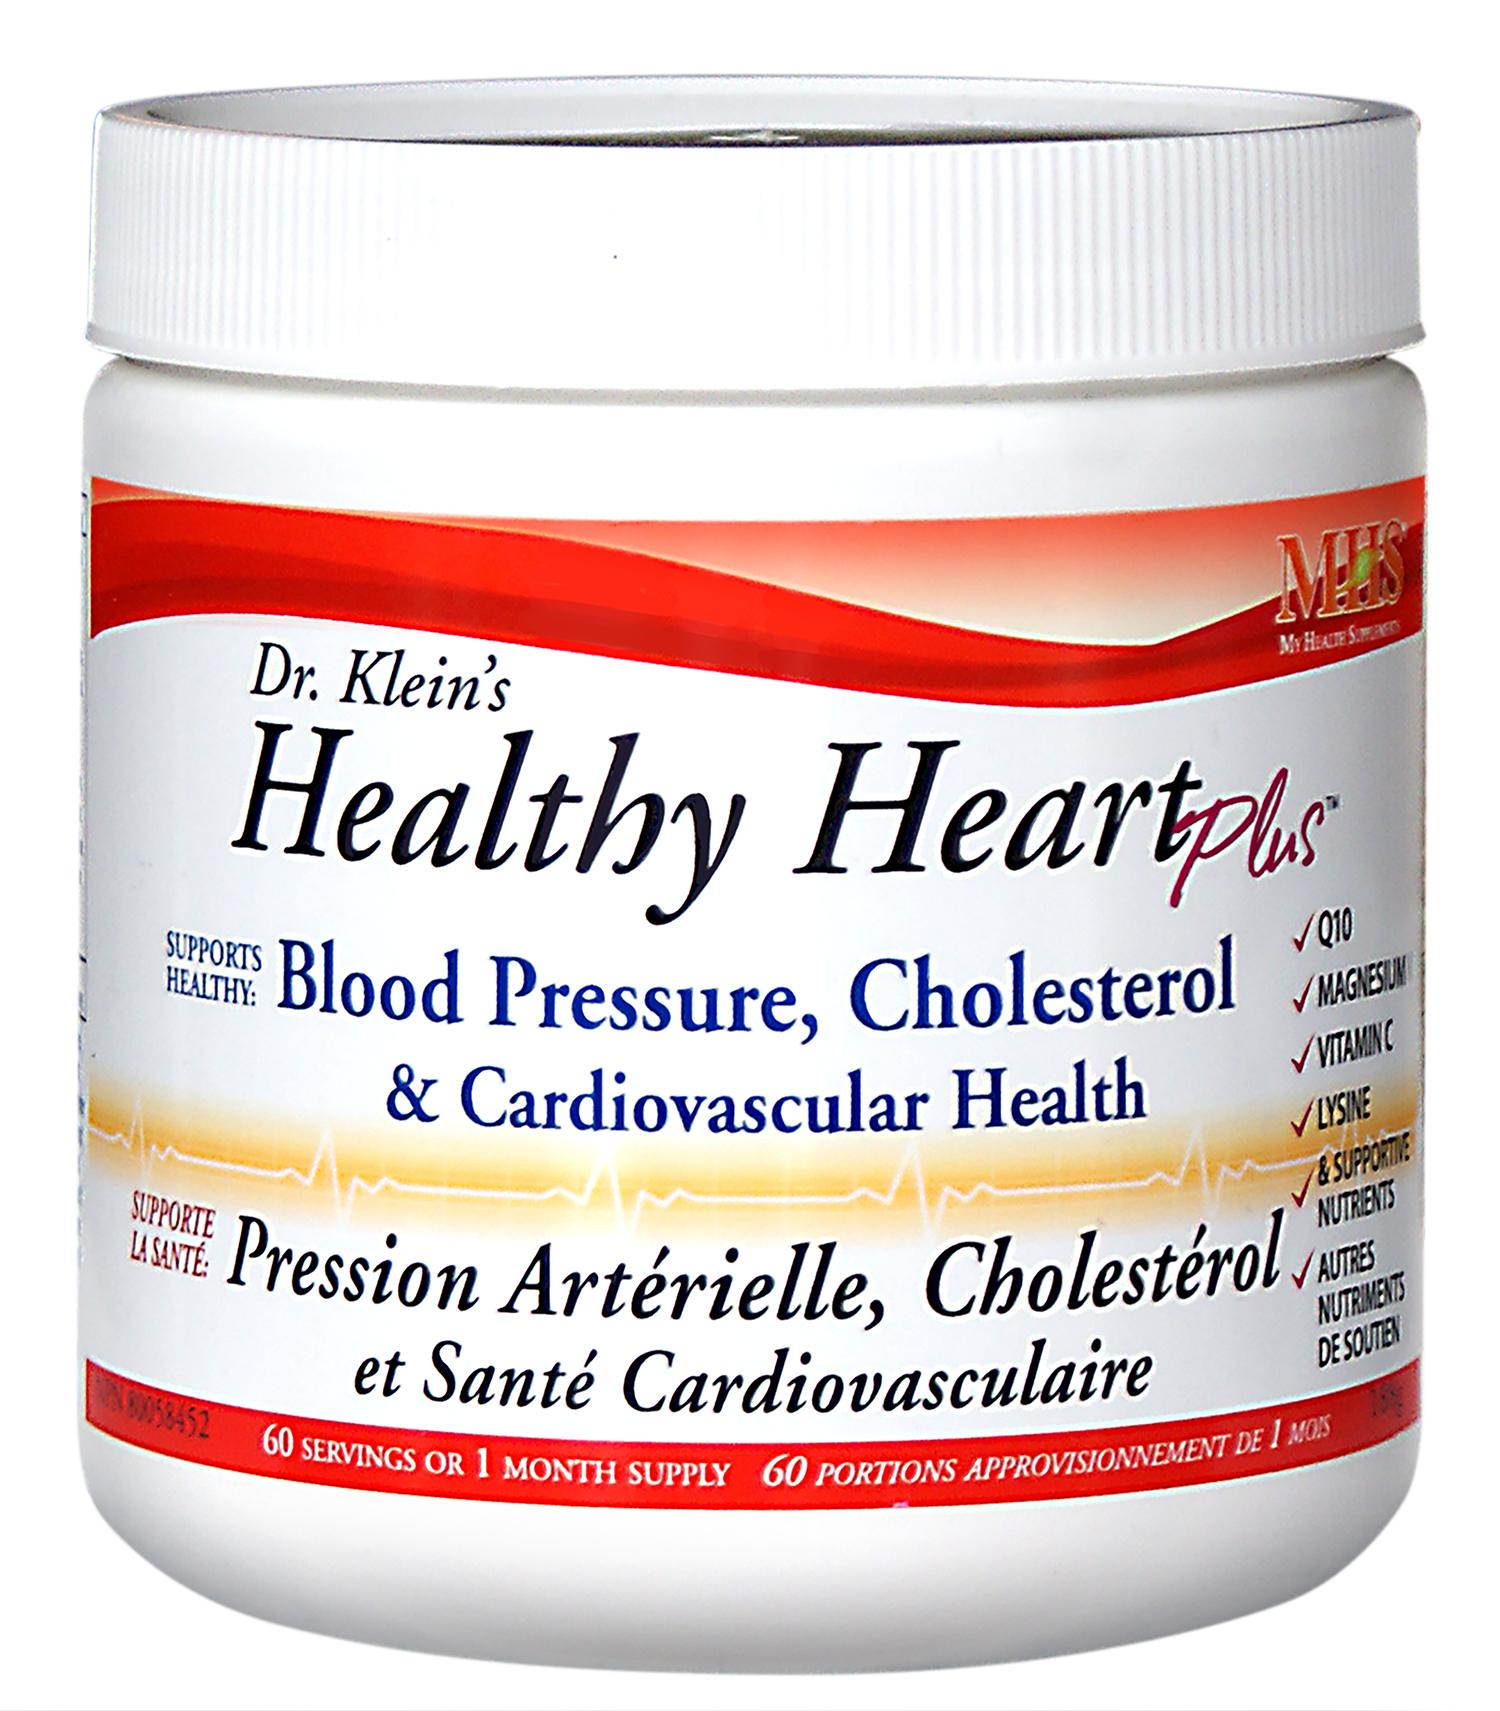 Supplements & Vitamins - MHS - Healthy Heart Plus, 188g